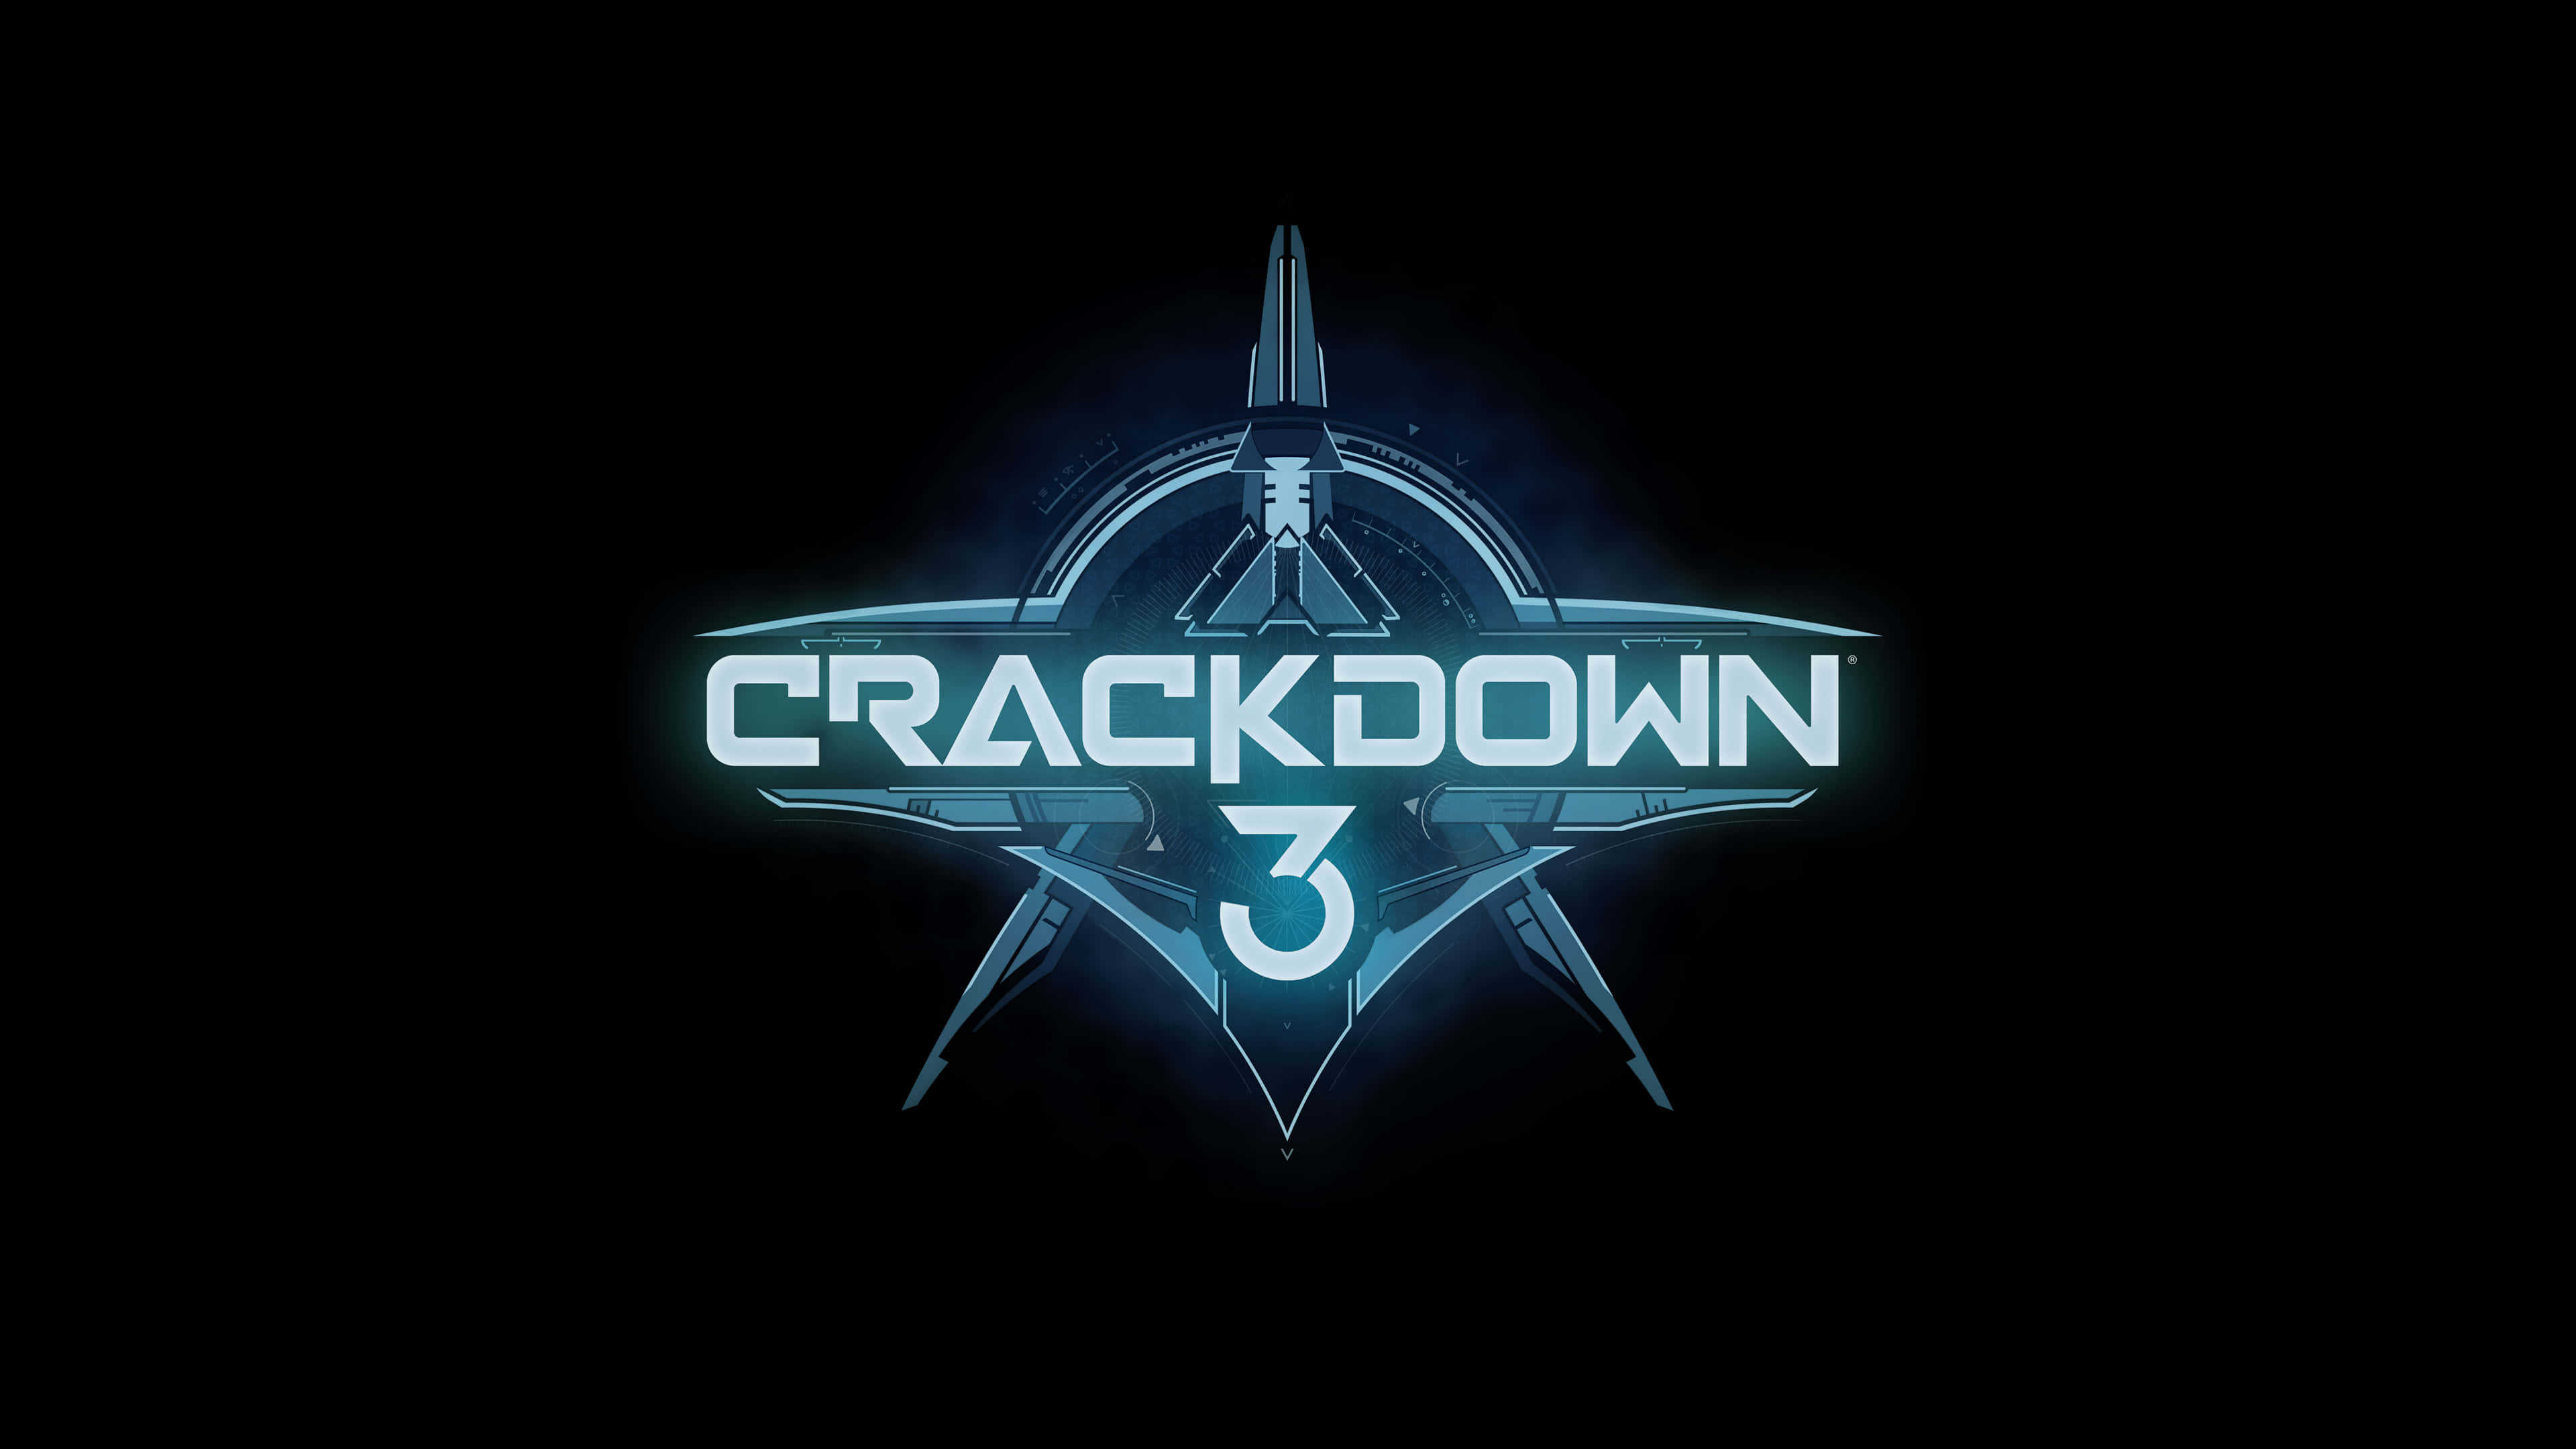 crackdown 3 logo uhd 4k wallpaper